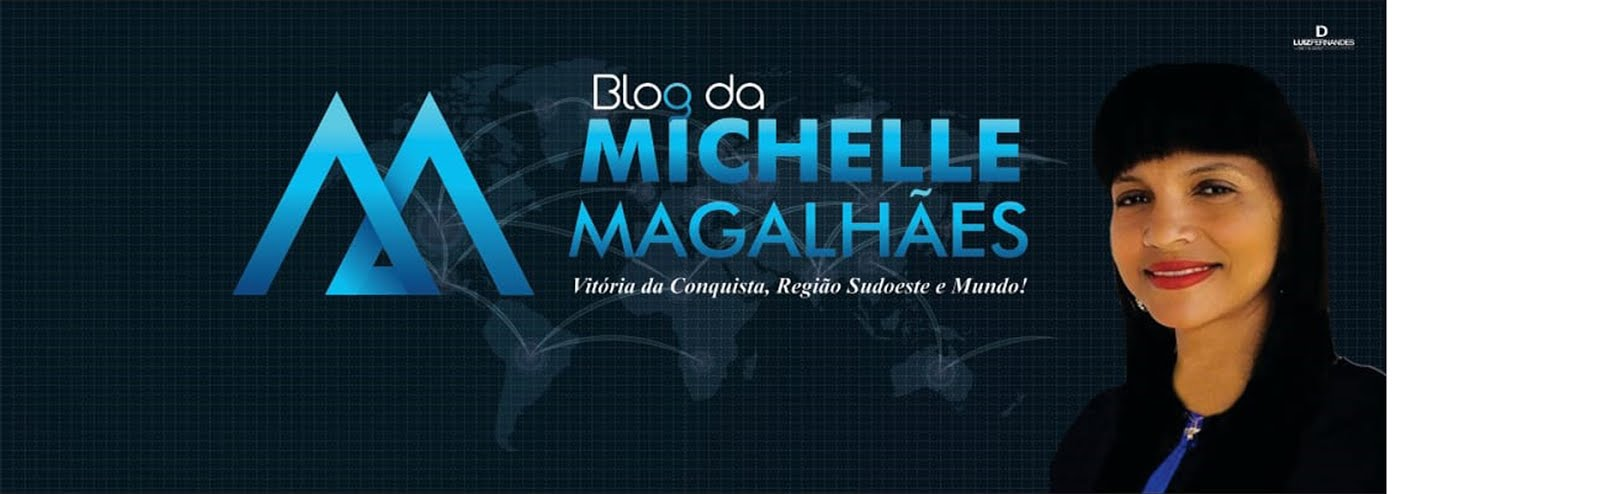 BLOG DA MICHELLE MAGALHÃES